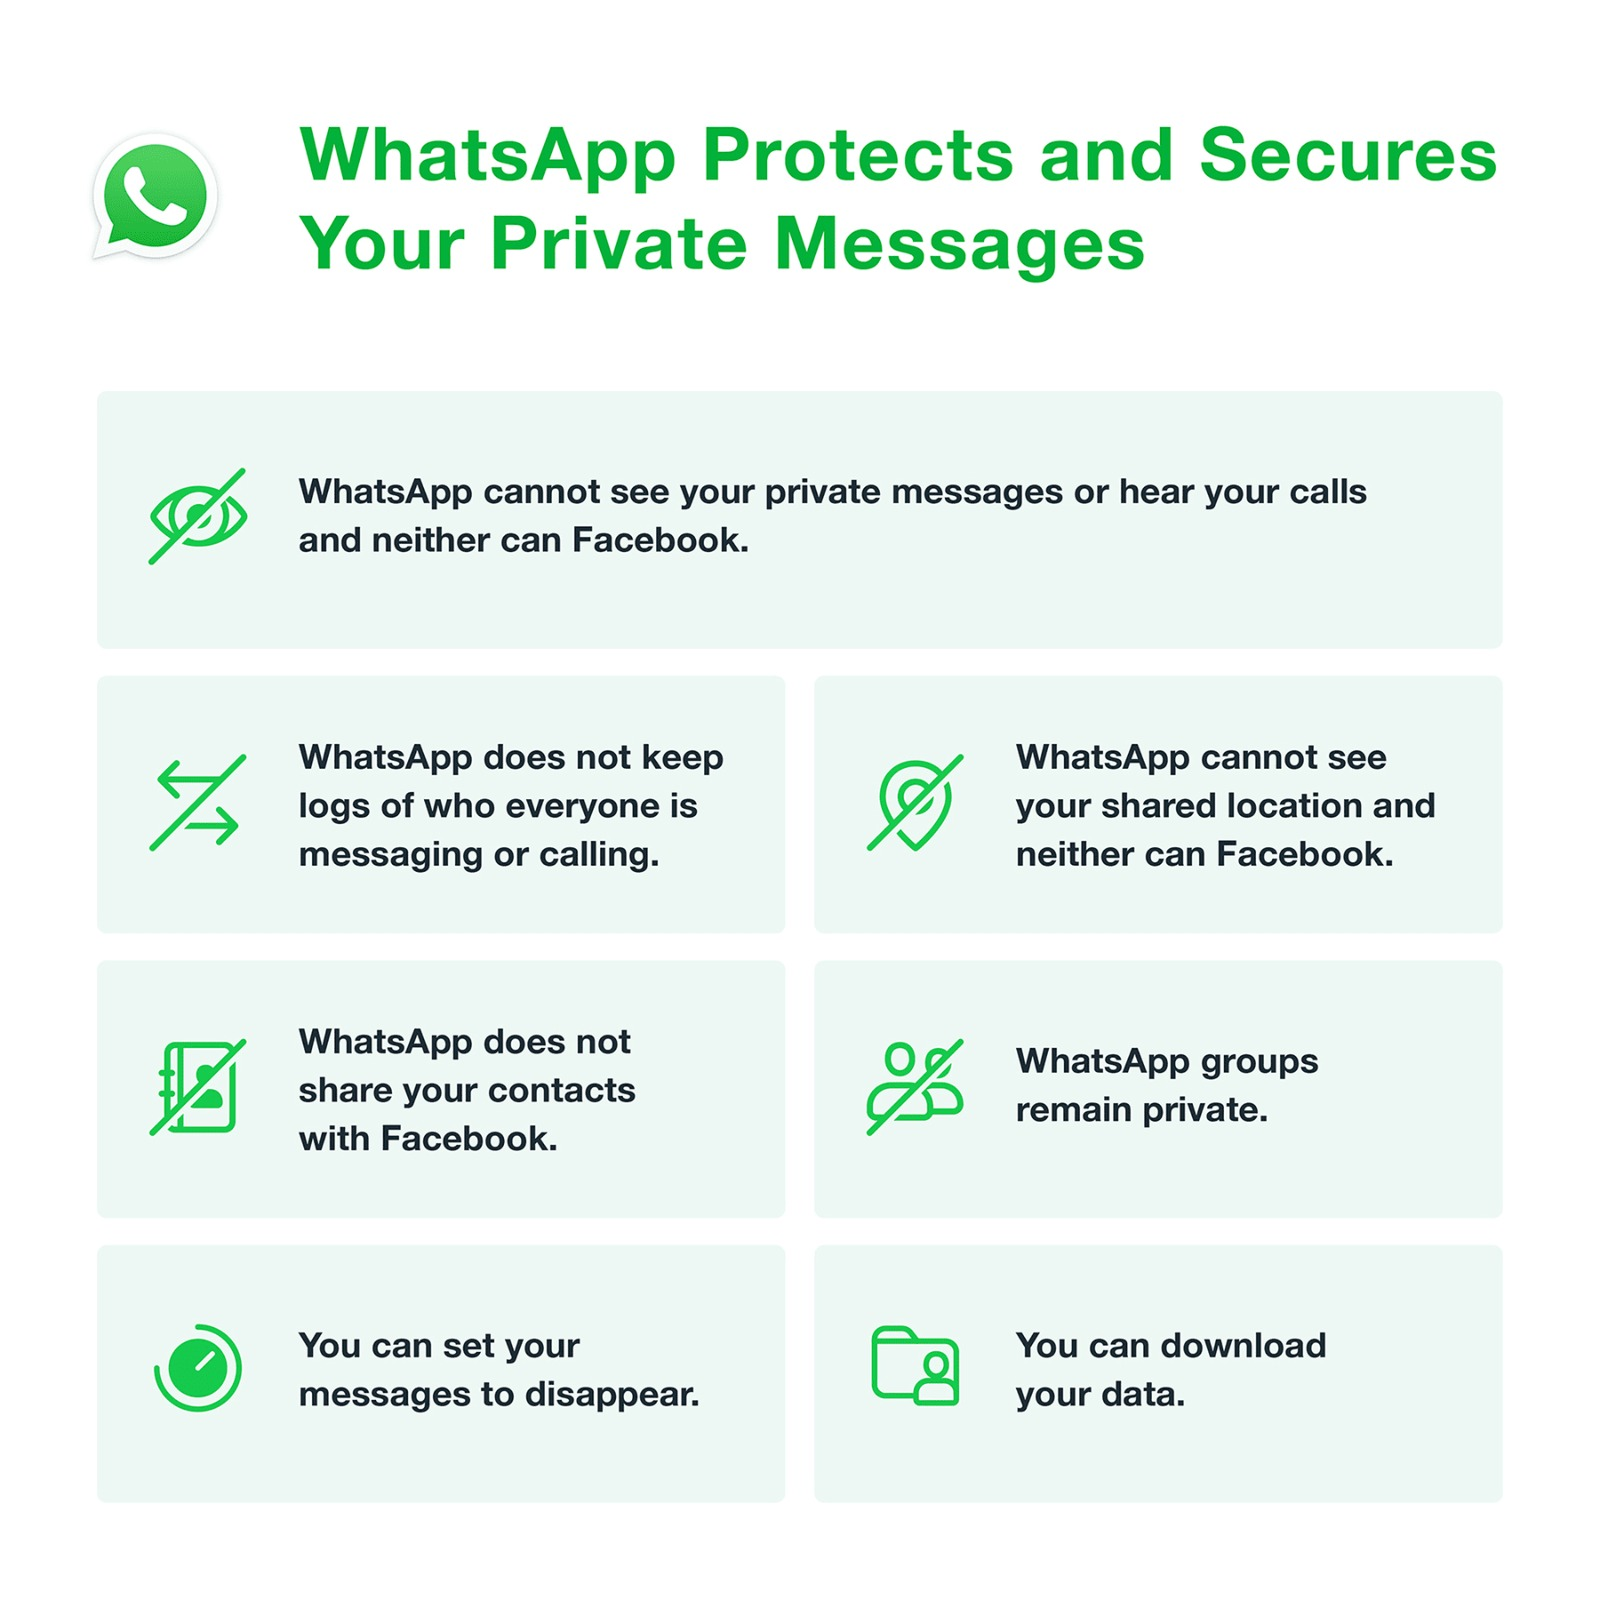 WhatsApp released the infographic above to highlight the protections it guarantees users